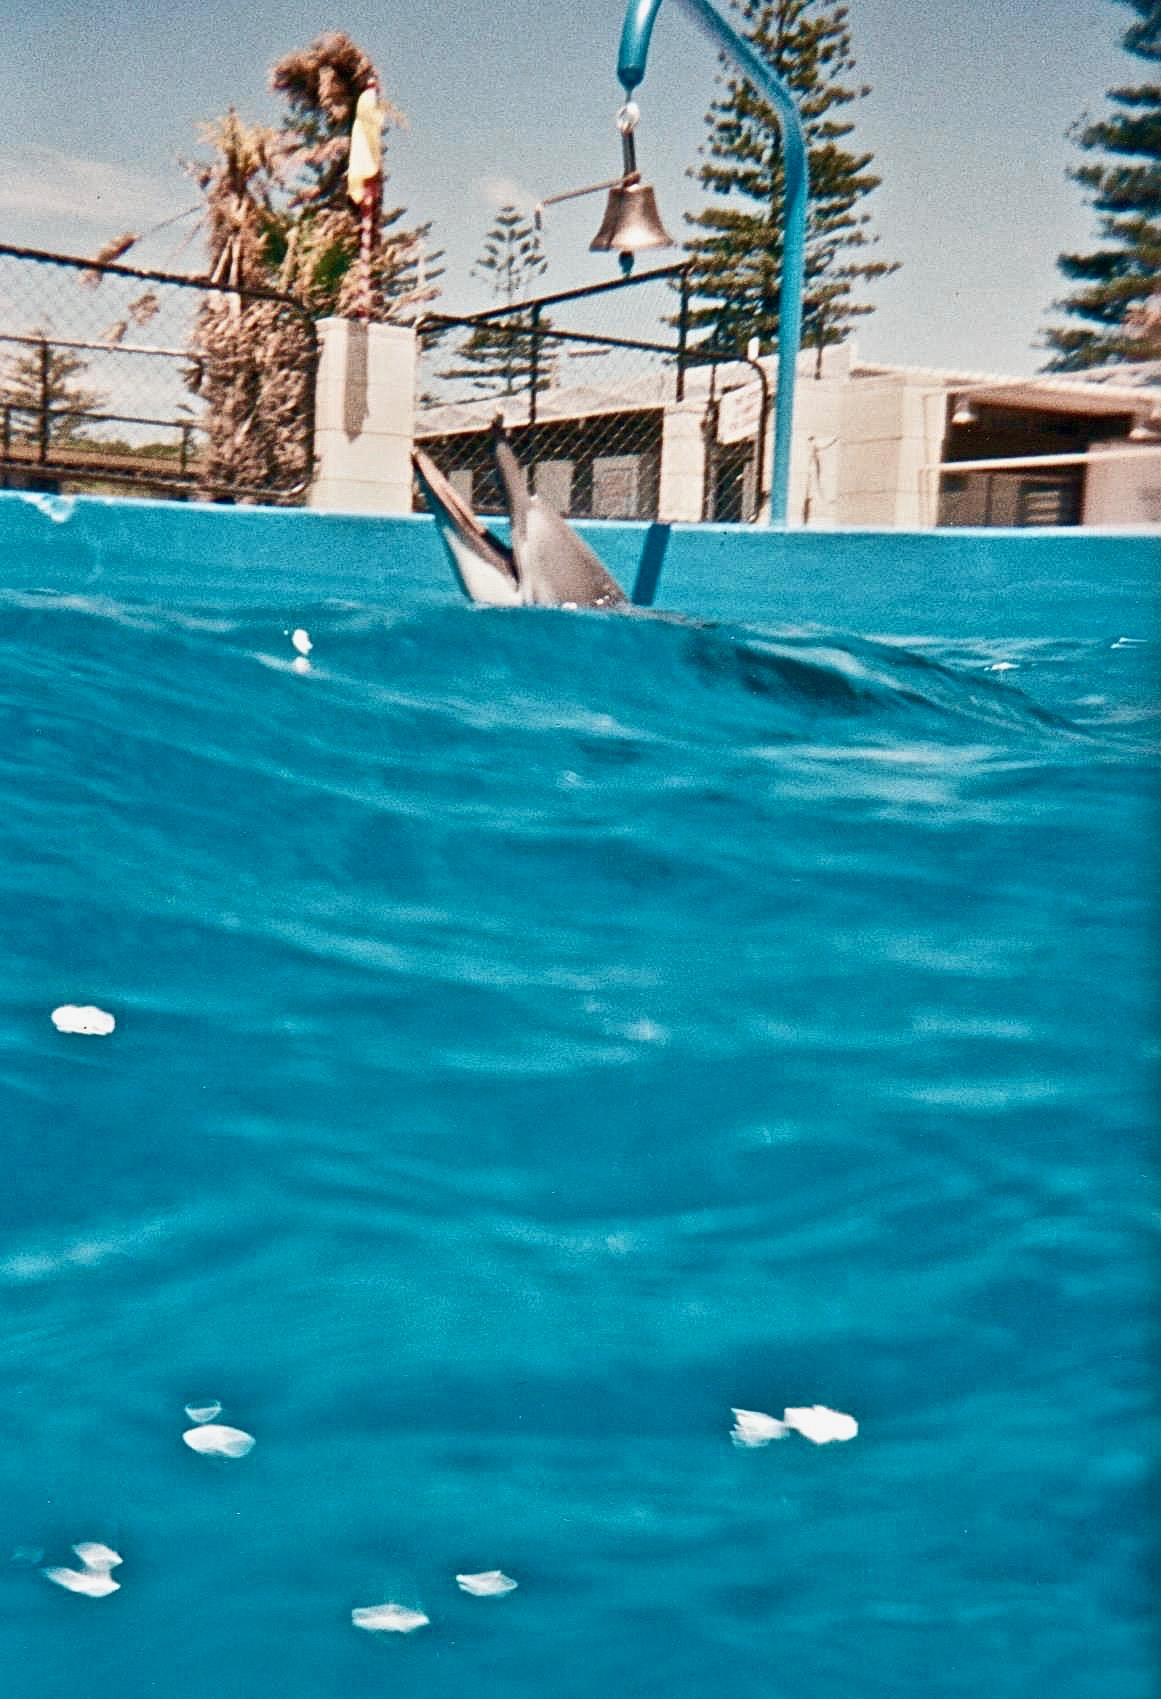 NZ swimming with dolphins water pov.jpg